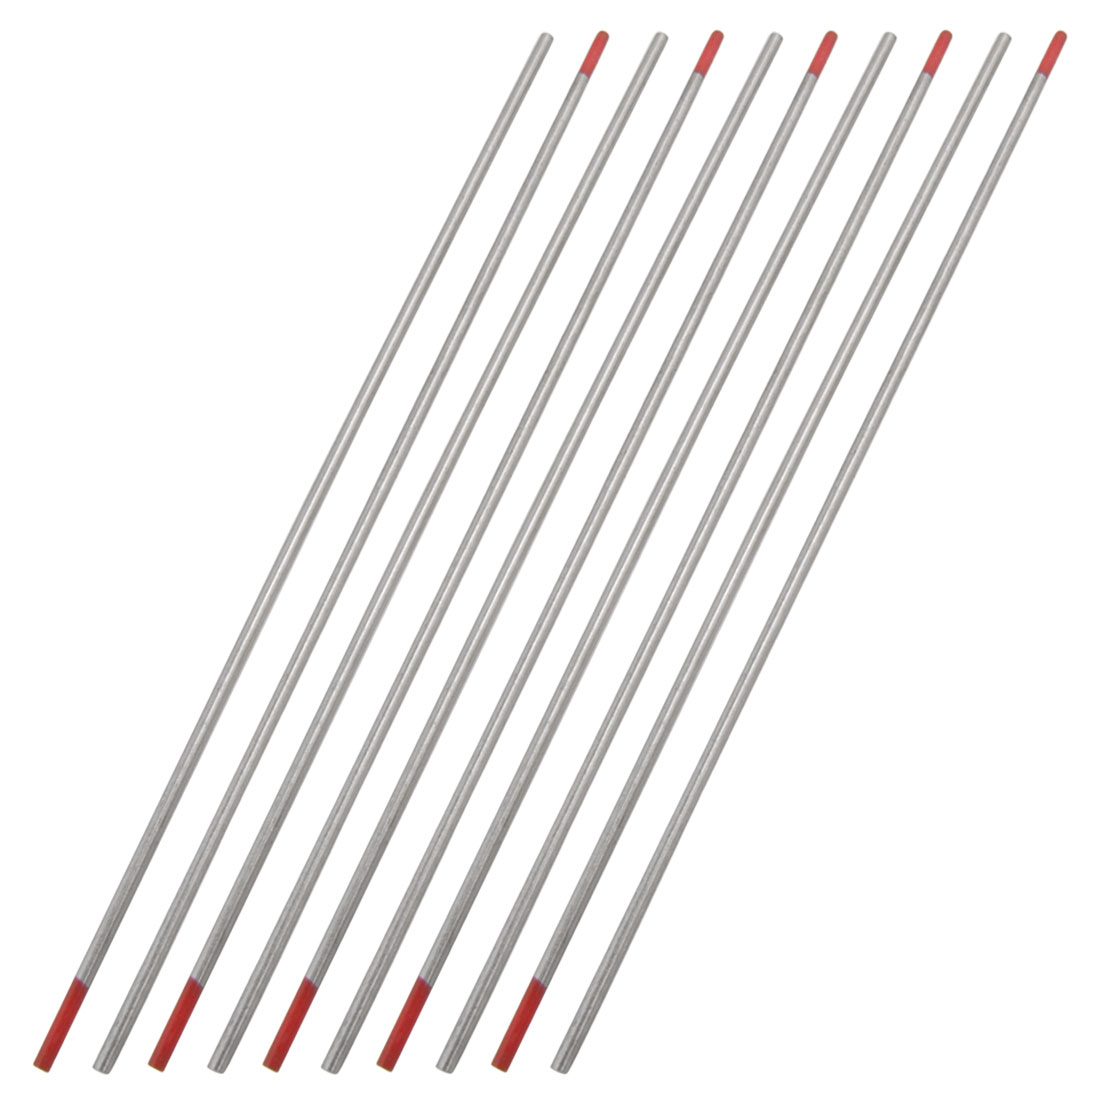 2mm x 150mm Welding Ceriated Red Tungsten Electrodes 10 Pcs